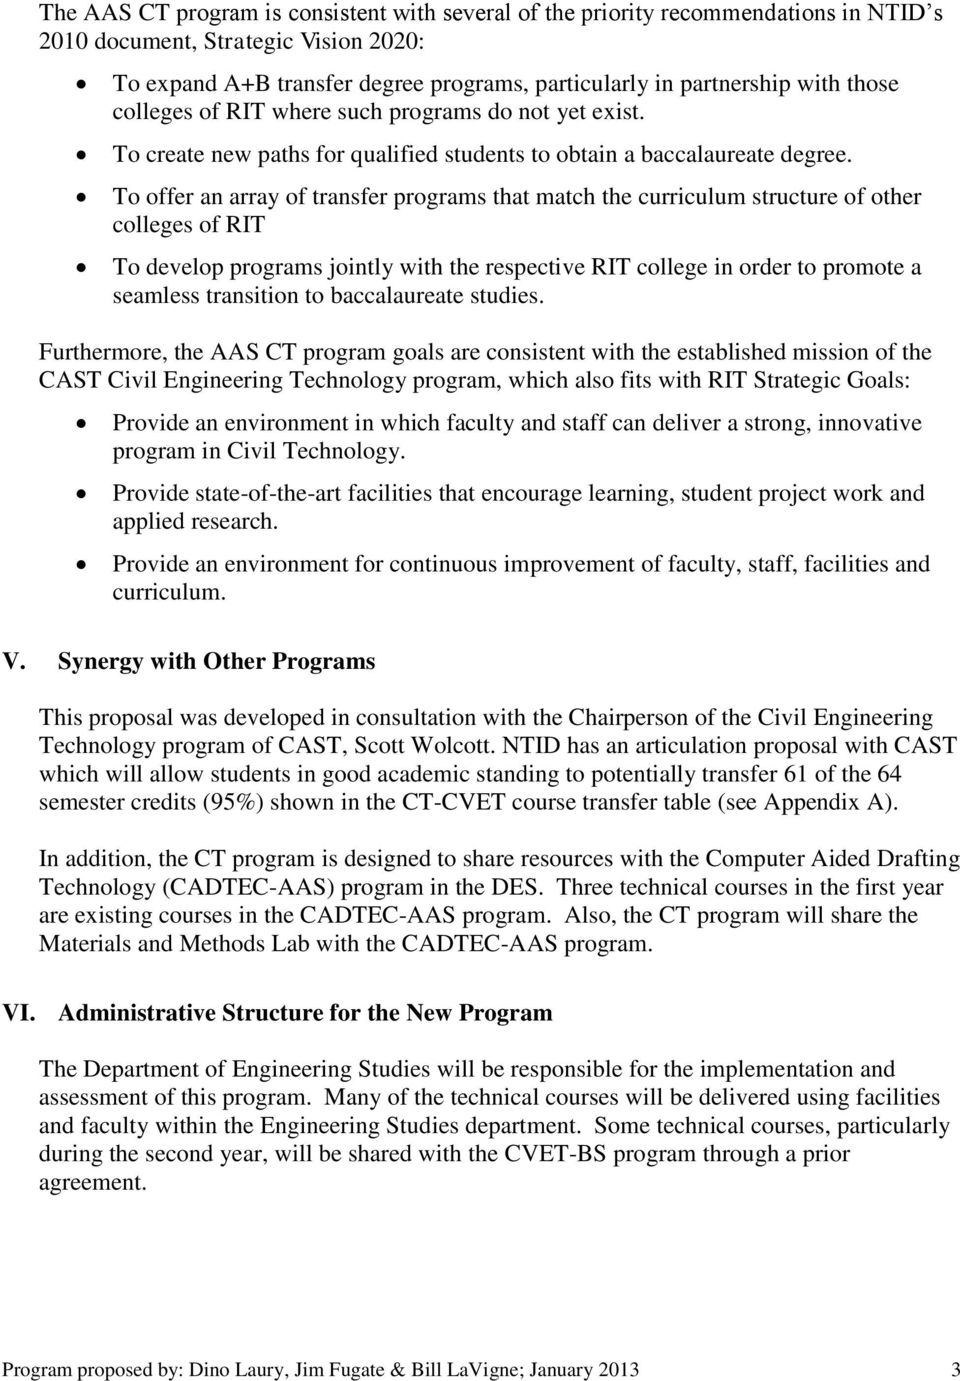 To offer an array of transfer programs that match the curriculum structure of other colleges of RIT To develop programs jointly with the respective RIT college in order to promote a seamless